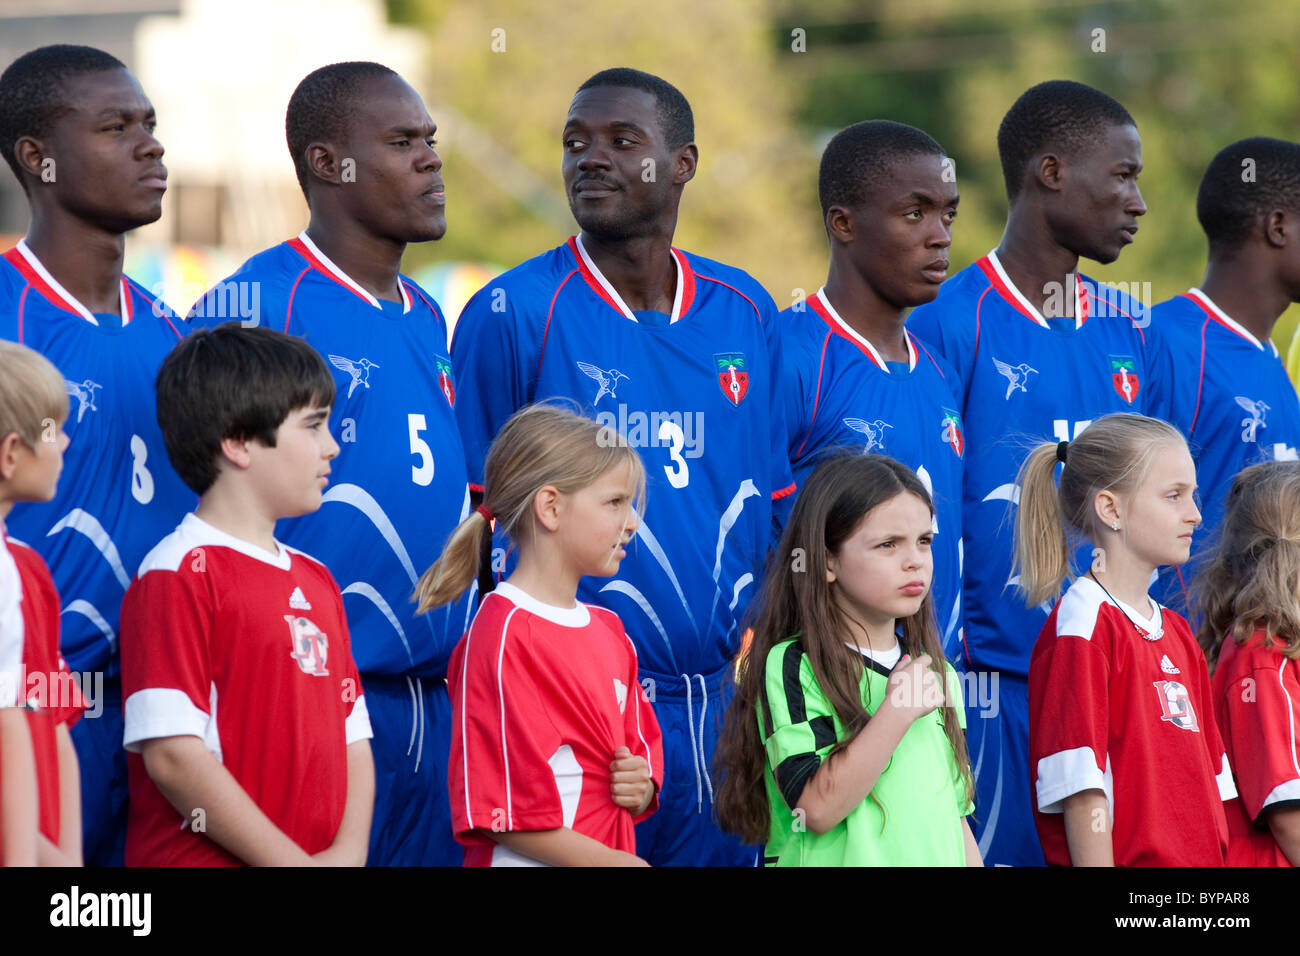 The Haitian National Soccer team and escorts stand at attention before an exhibition  with a professional team in - Stock Image